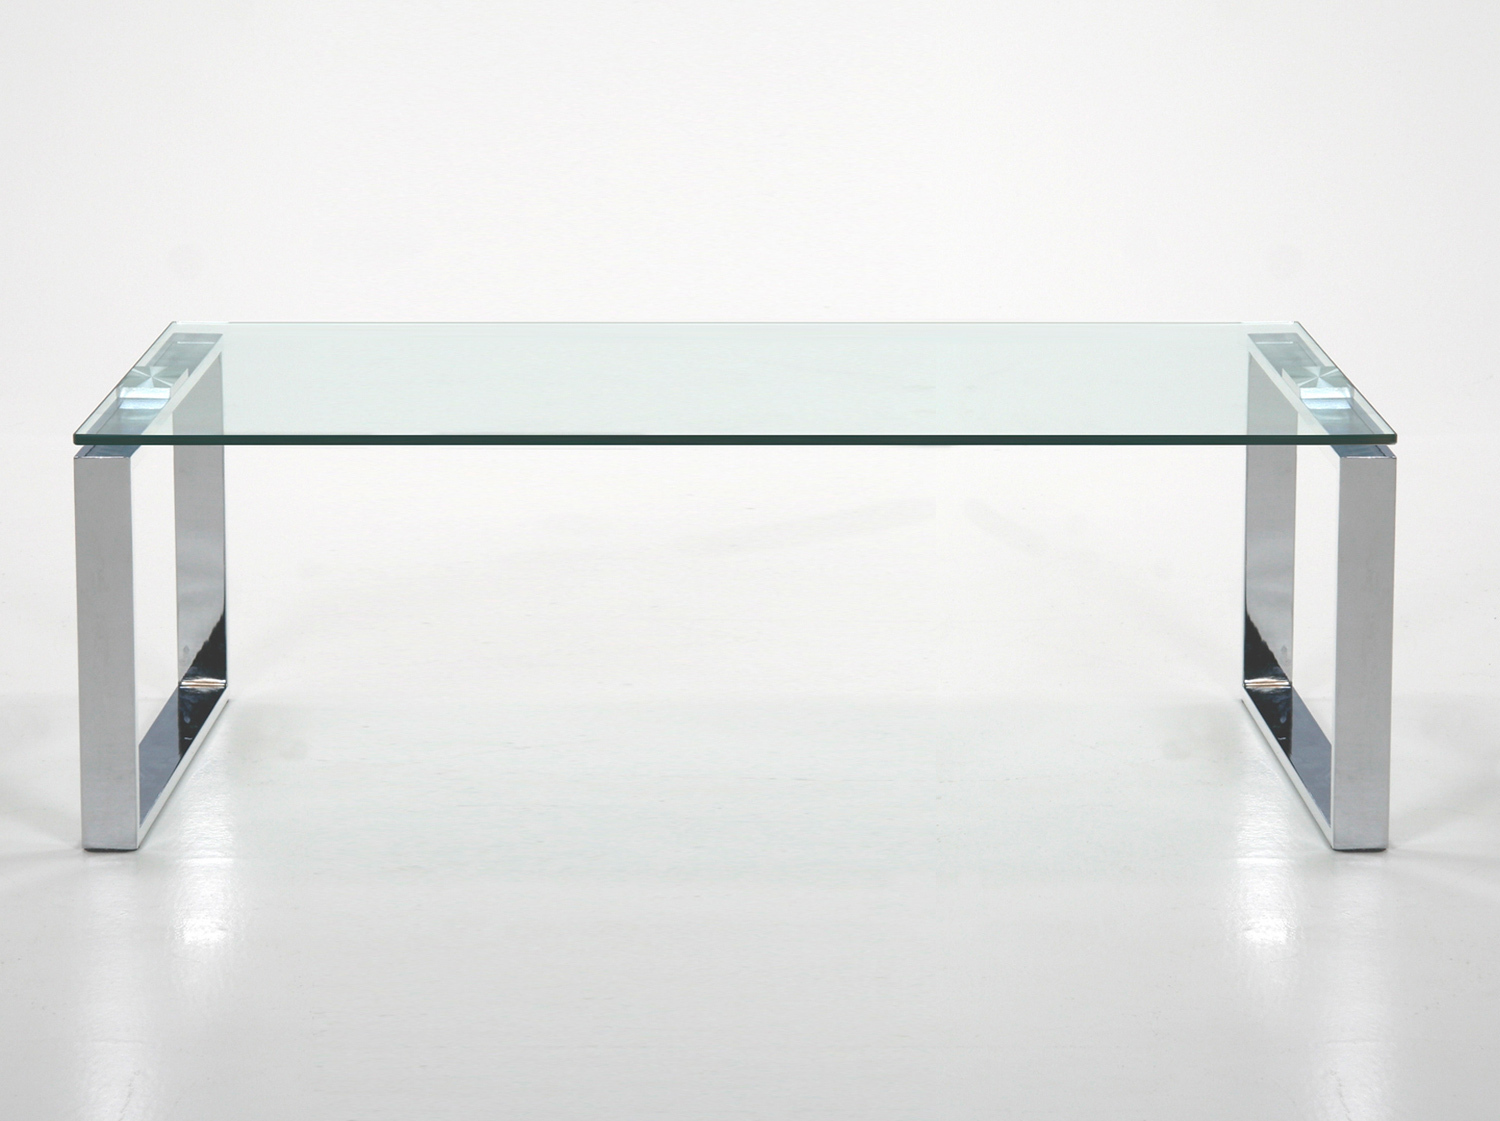 Glass Coffee Table You Could Sit Down And Relax On The Sofa With Your Cup Of Nescafe At This Table (View 9 of 10)